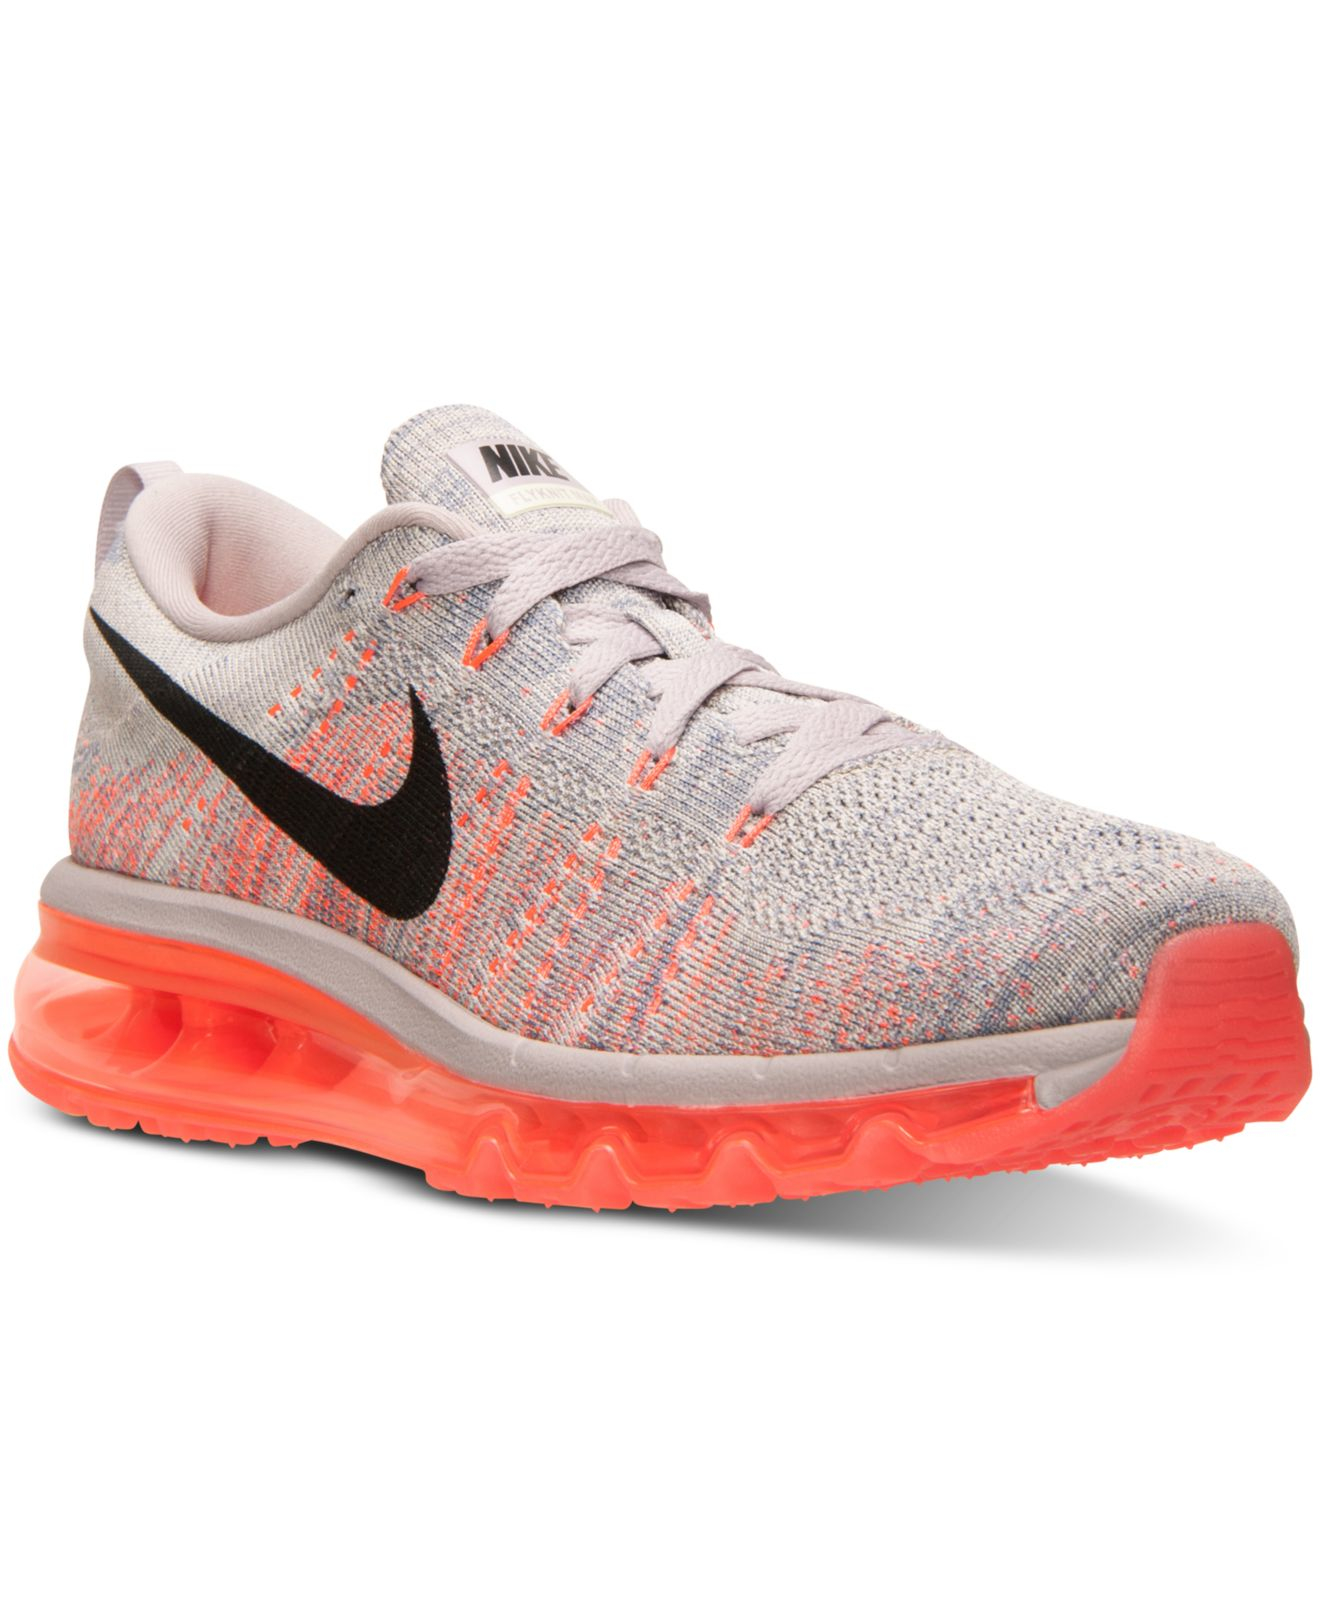 Nike Athletic Shoes With Support For Women